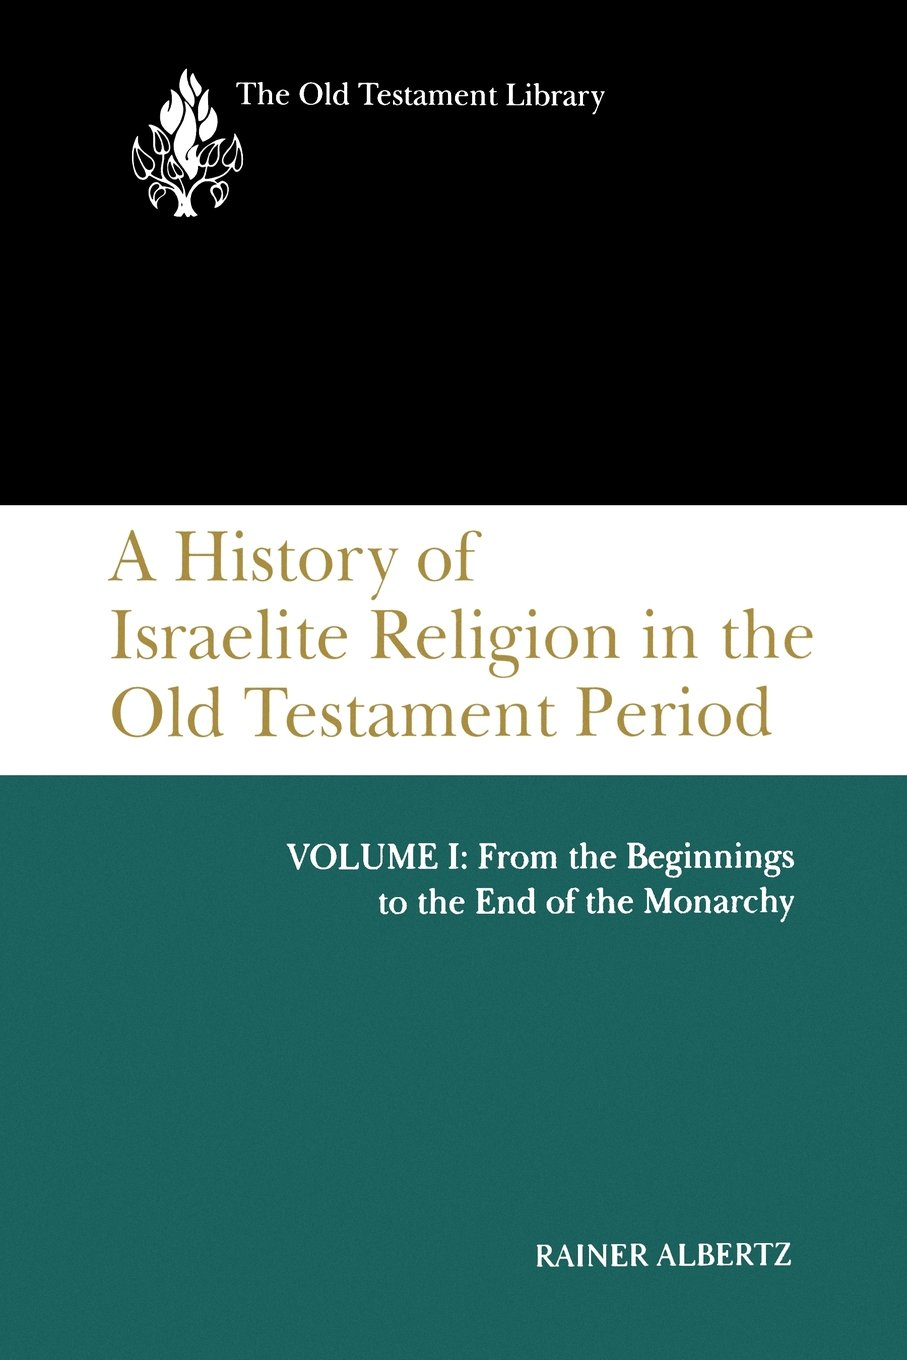 A History of Israelite Religion in the Old Testament Period, Volume I (1994)